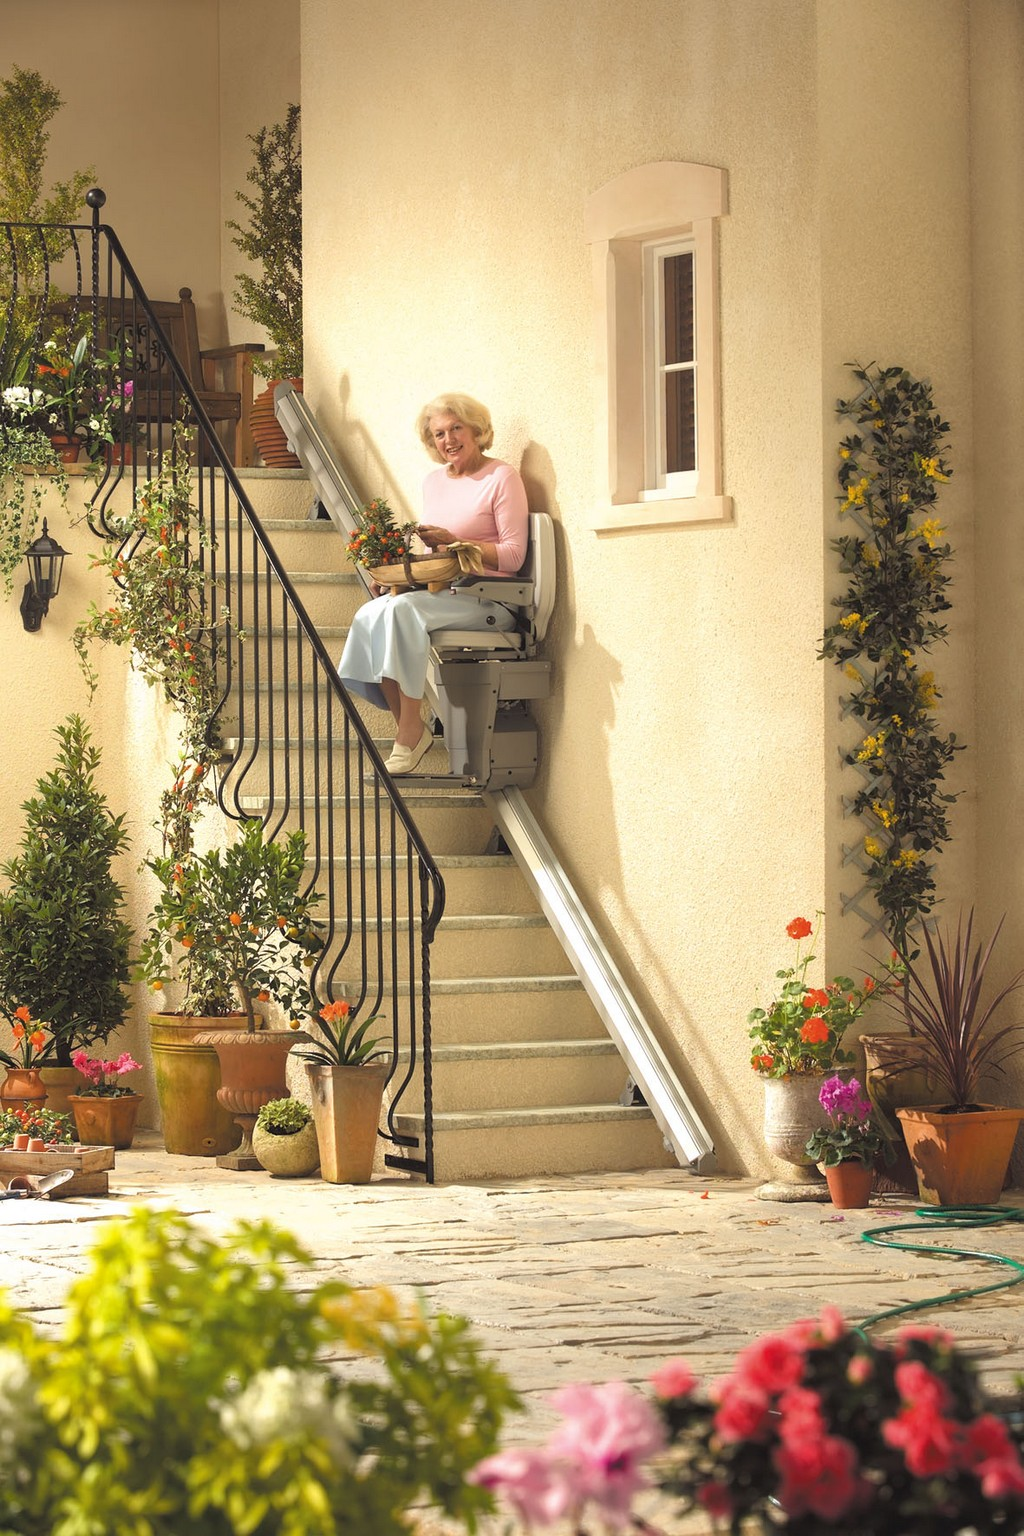 disabled stair lift, stair lifts medical supplies, reliable stairlifts, standup stair lift